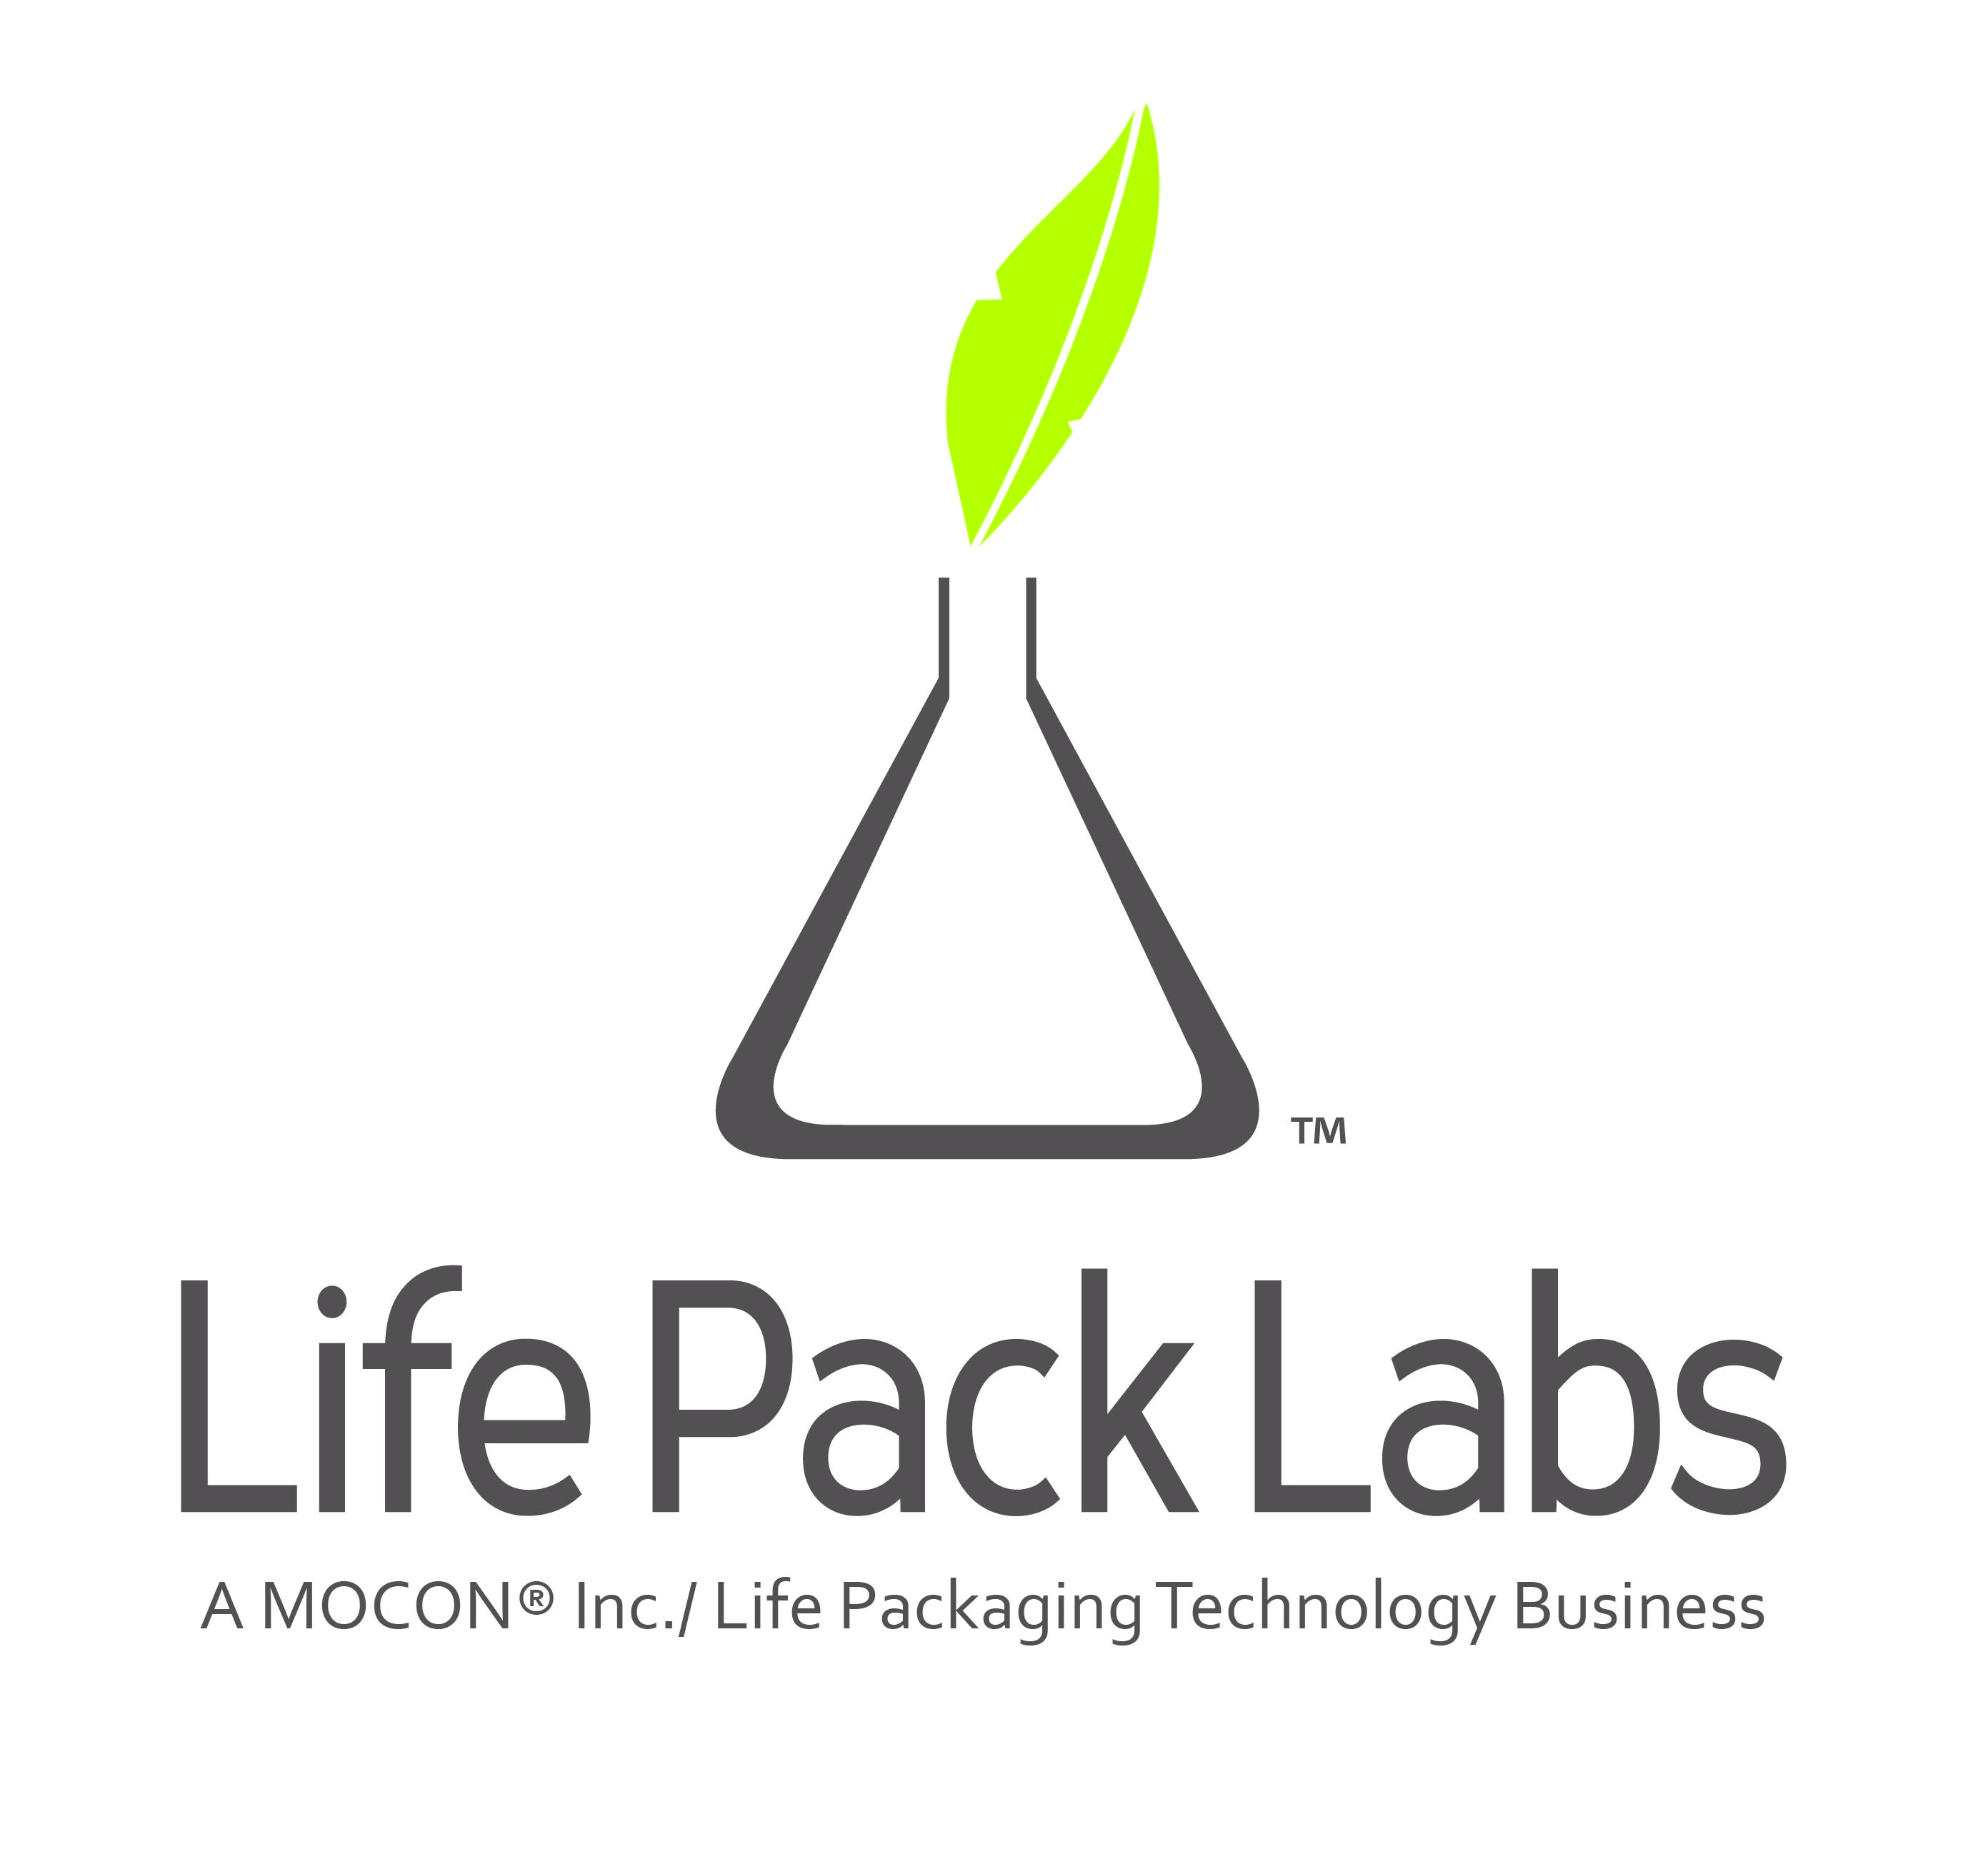 Life Packaging Laboratories LLC, dba Life Pack Labs